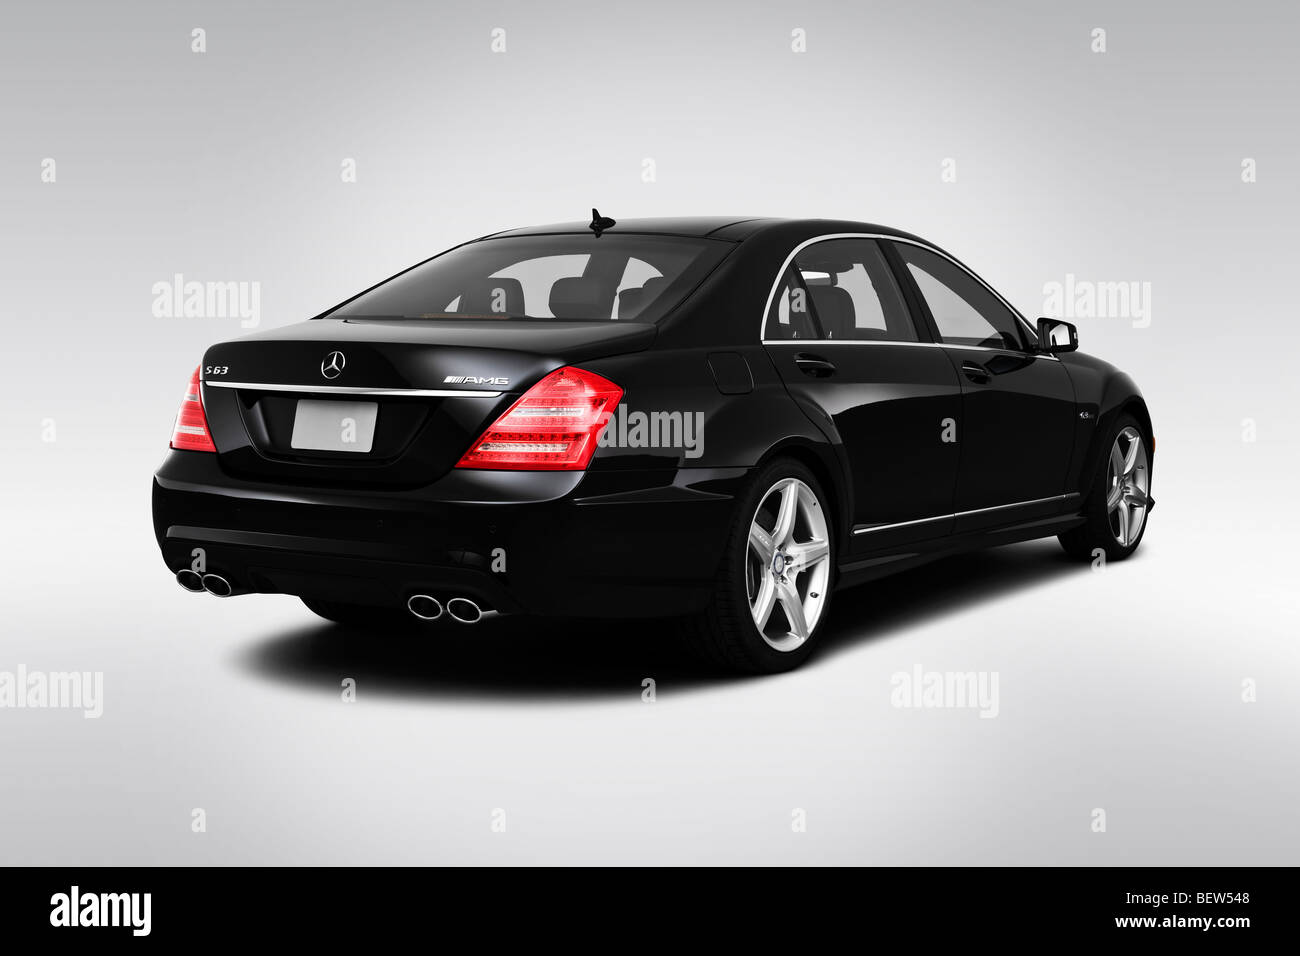 2010 mercedes benz s class s63 amg in black rear angle for 2010 mercedes benz s63 amg